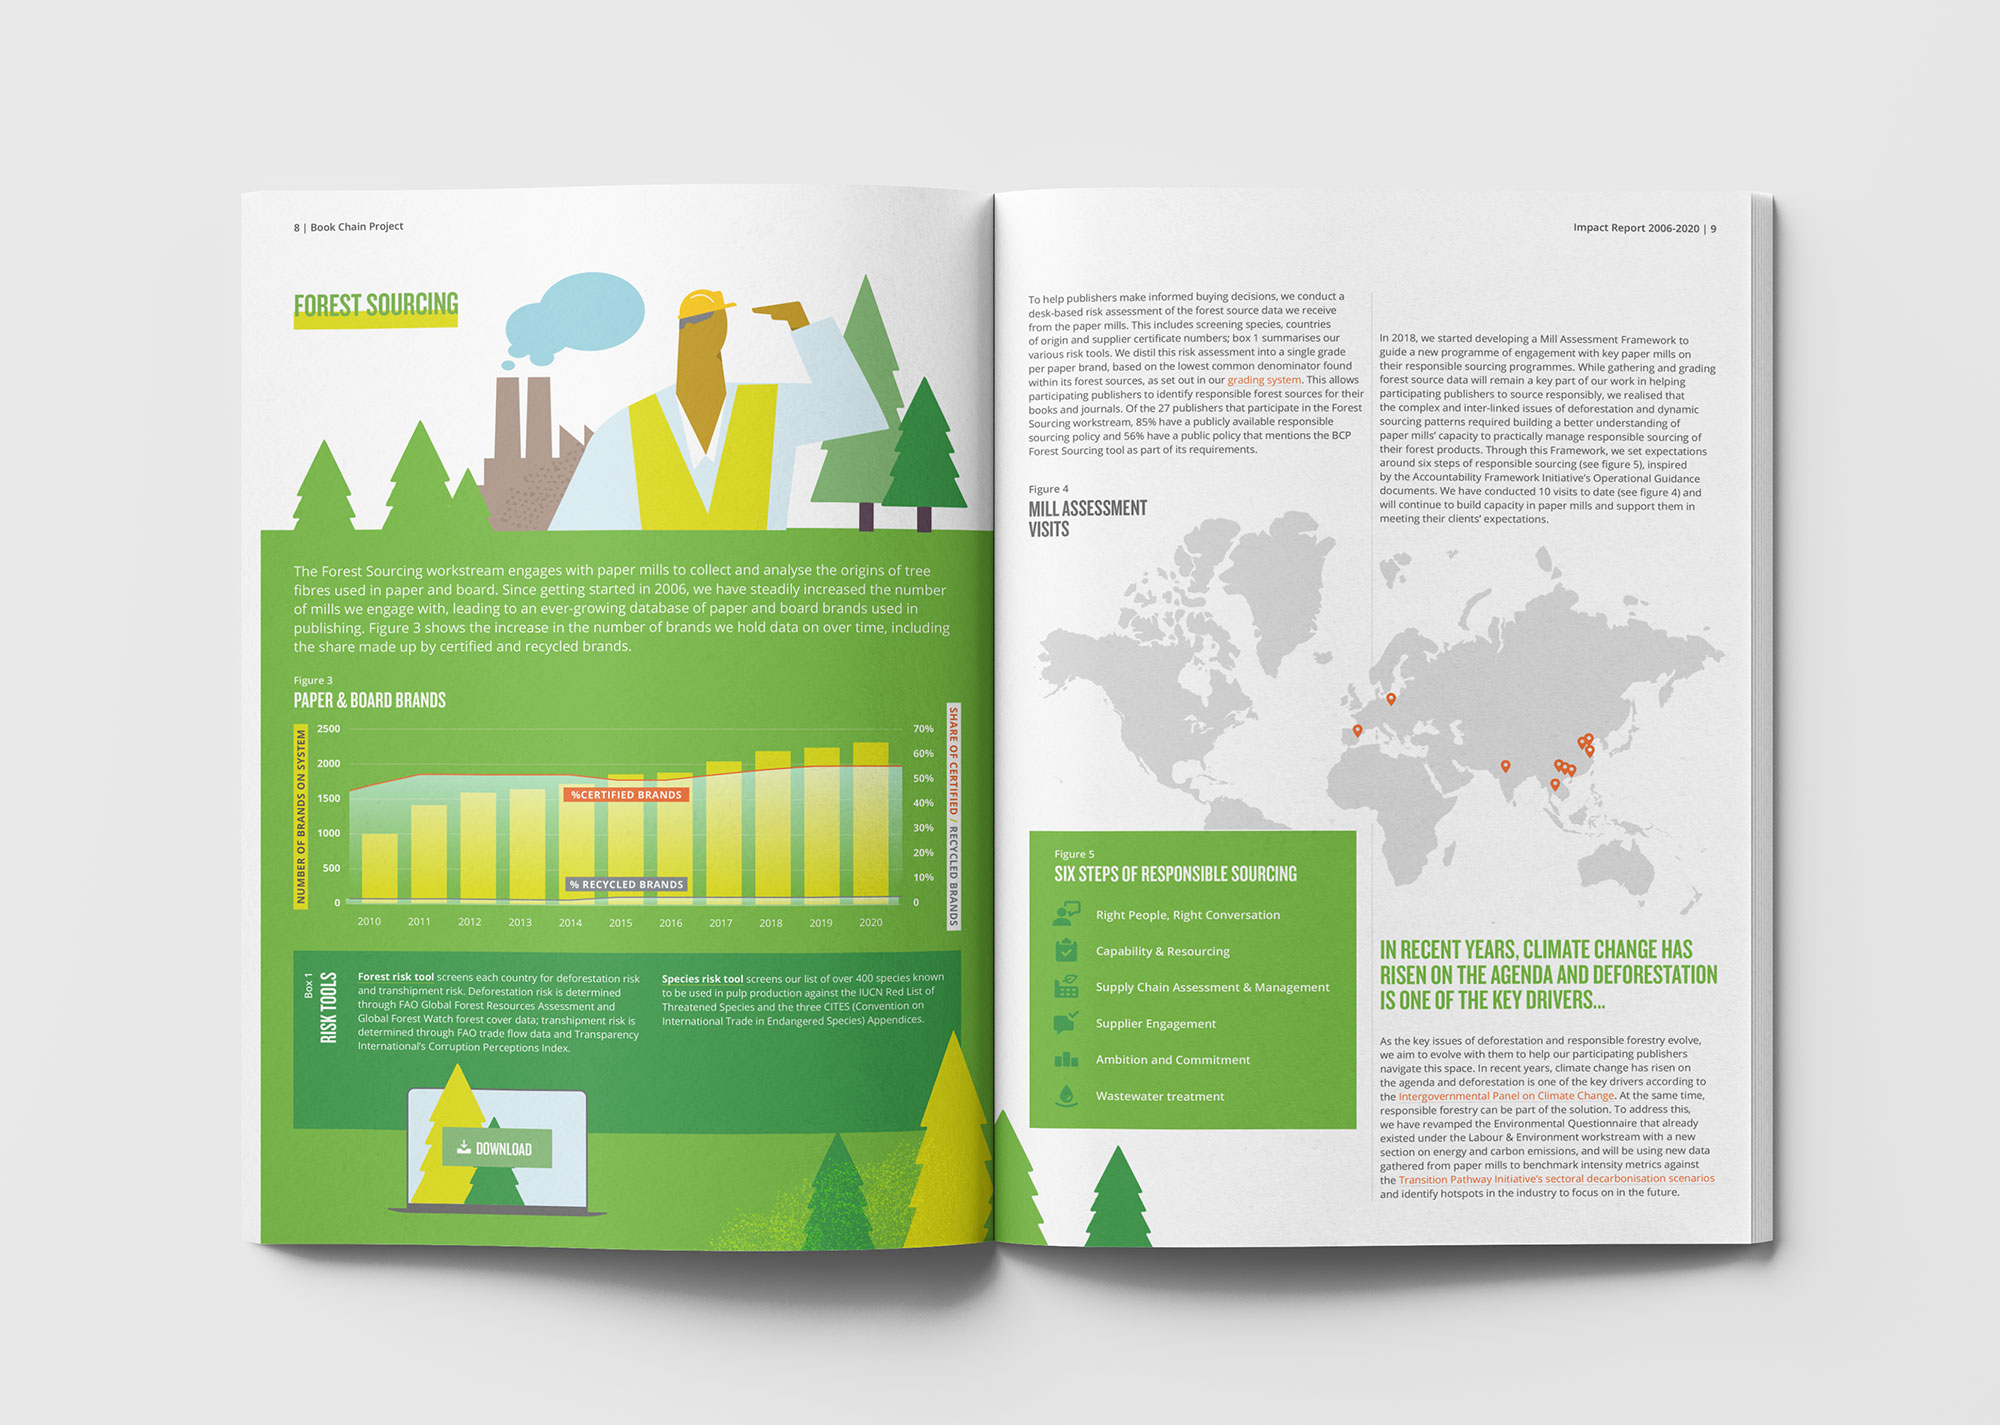 Book Chain Impact Report forest sourcing